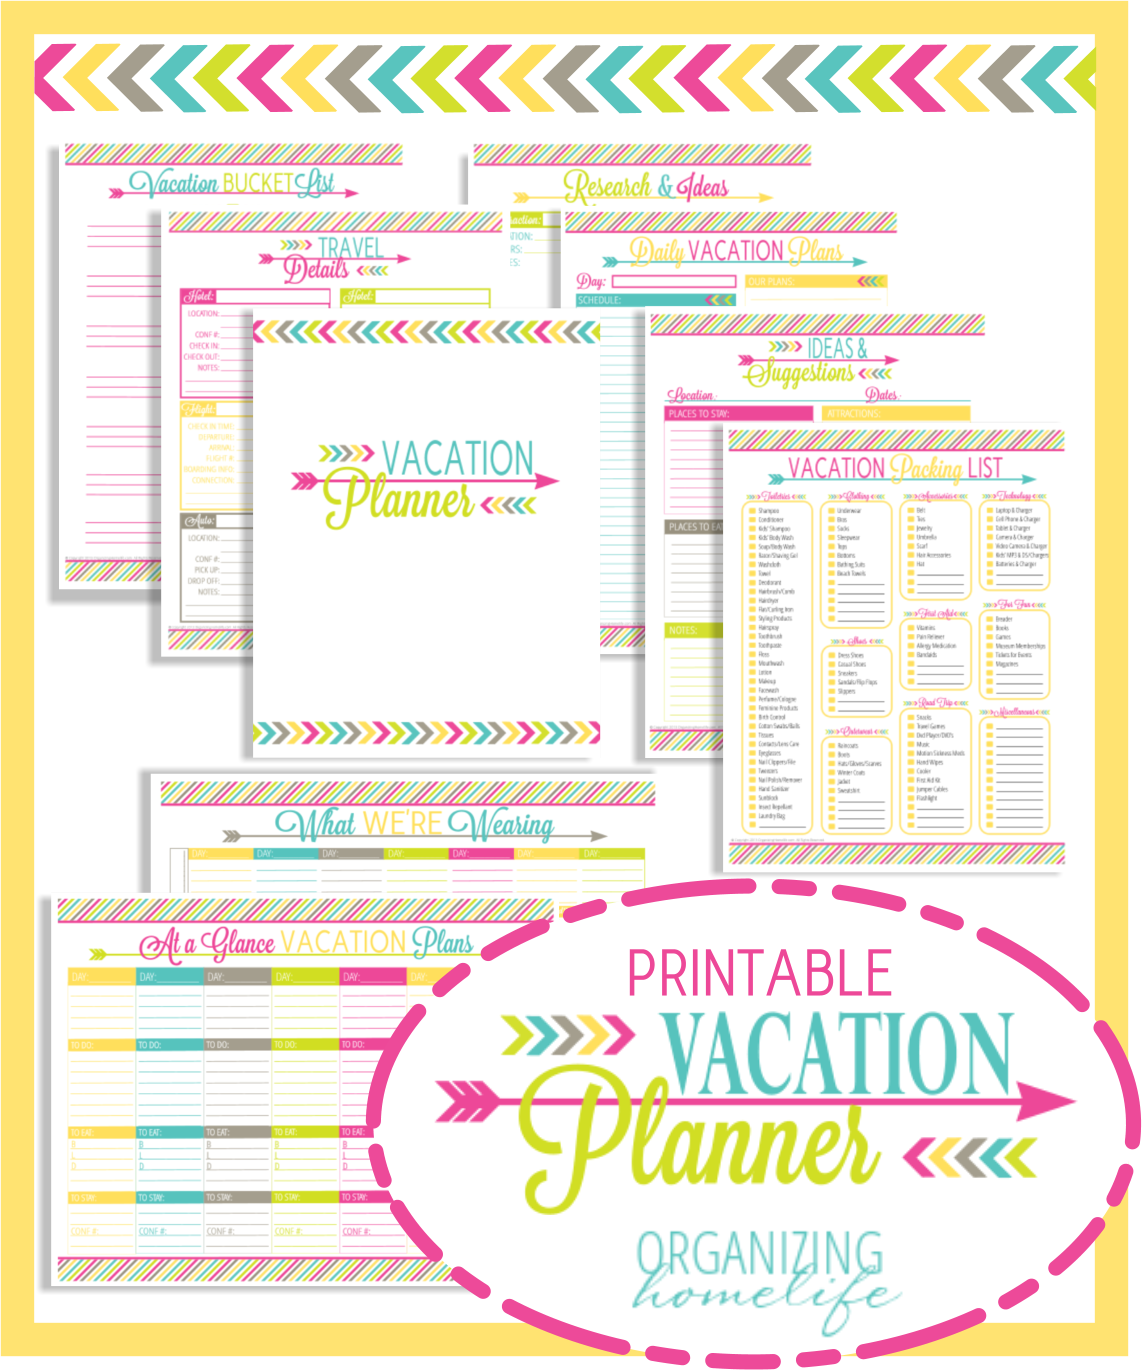 7 Images of Travel Life Home Organizing Printables